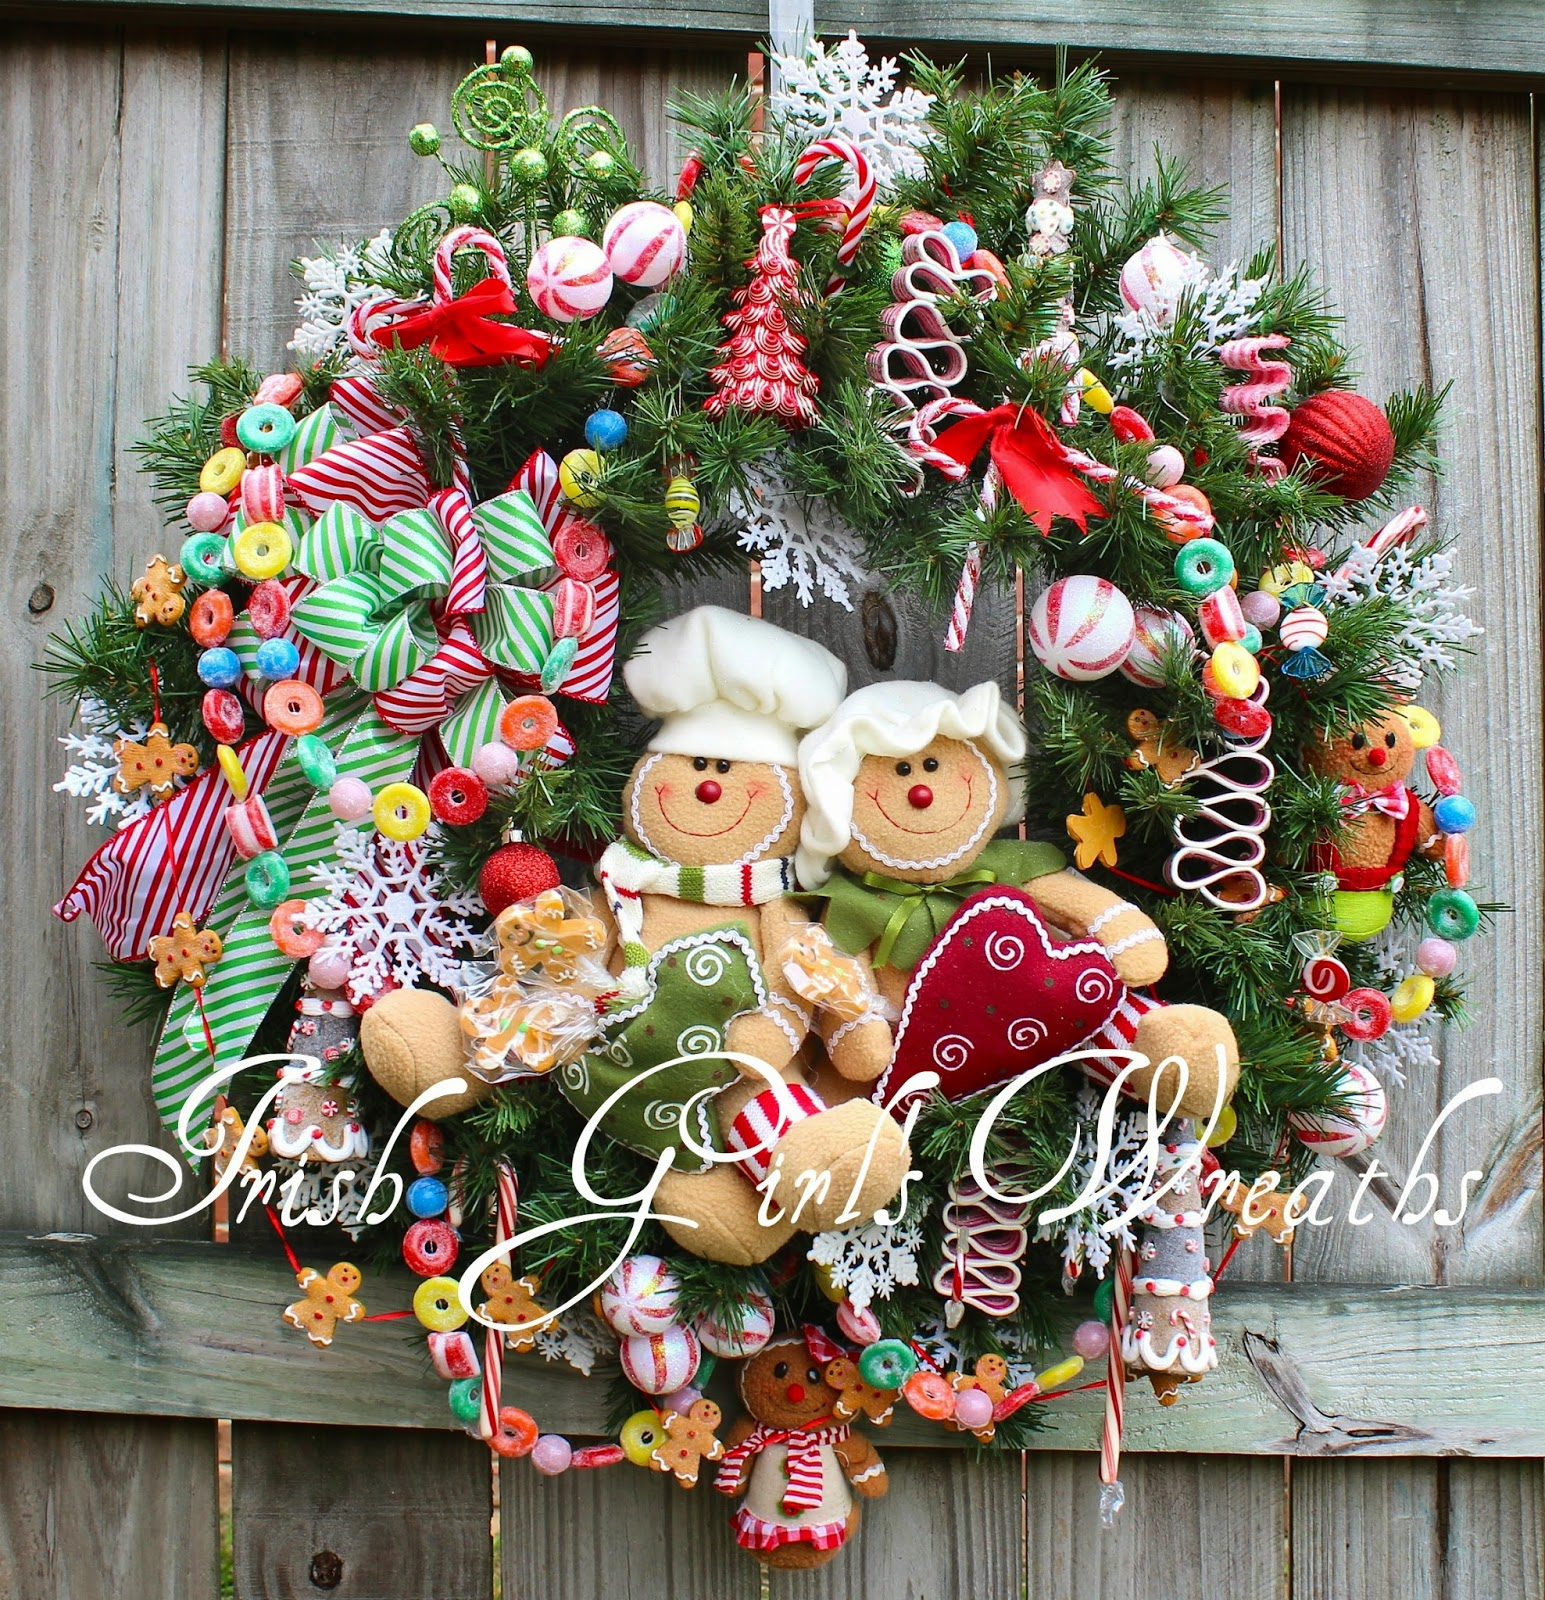 XXL Gingerbread Family Christmas Wreath, Candy, peppermint, Extra Large